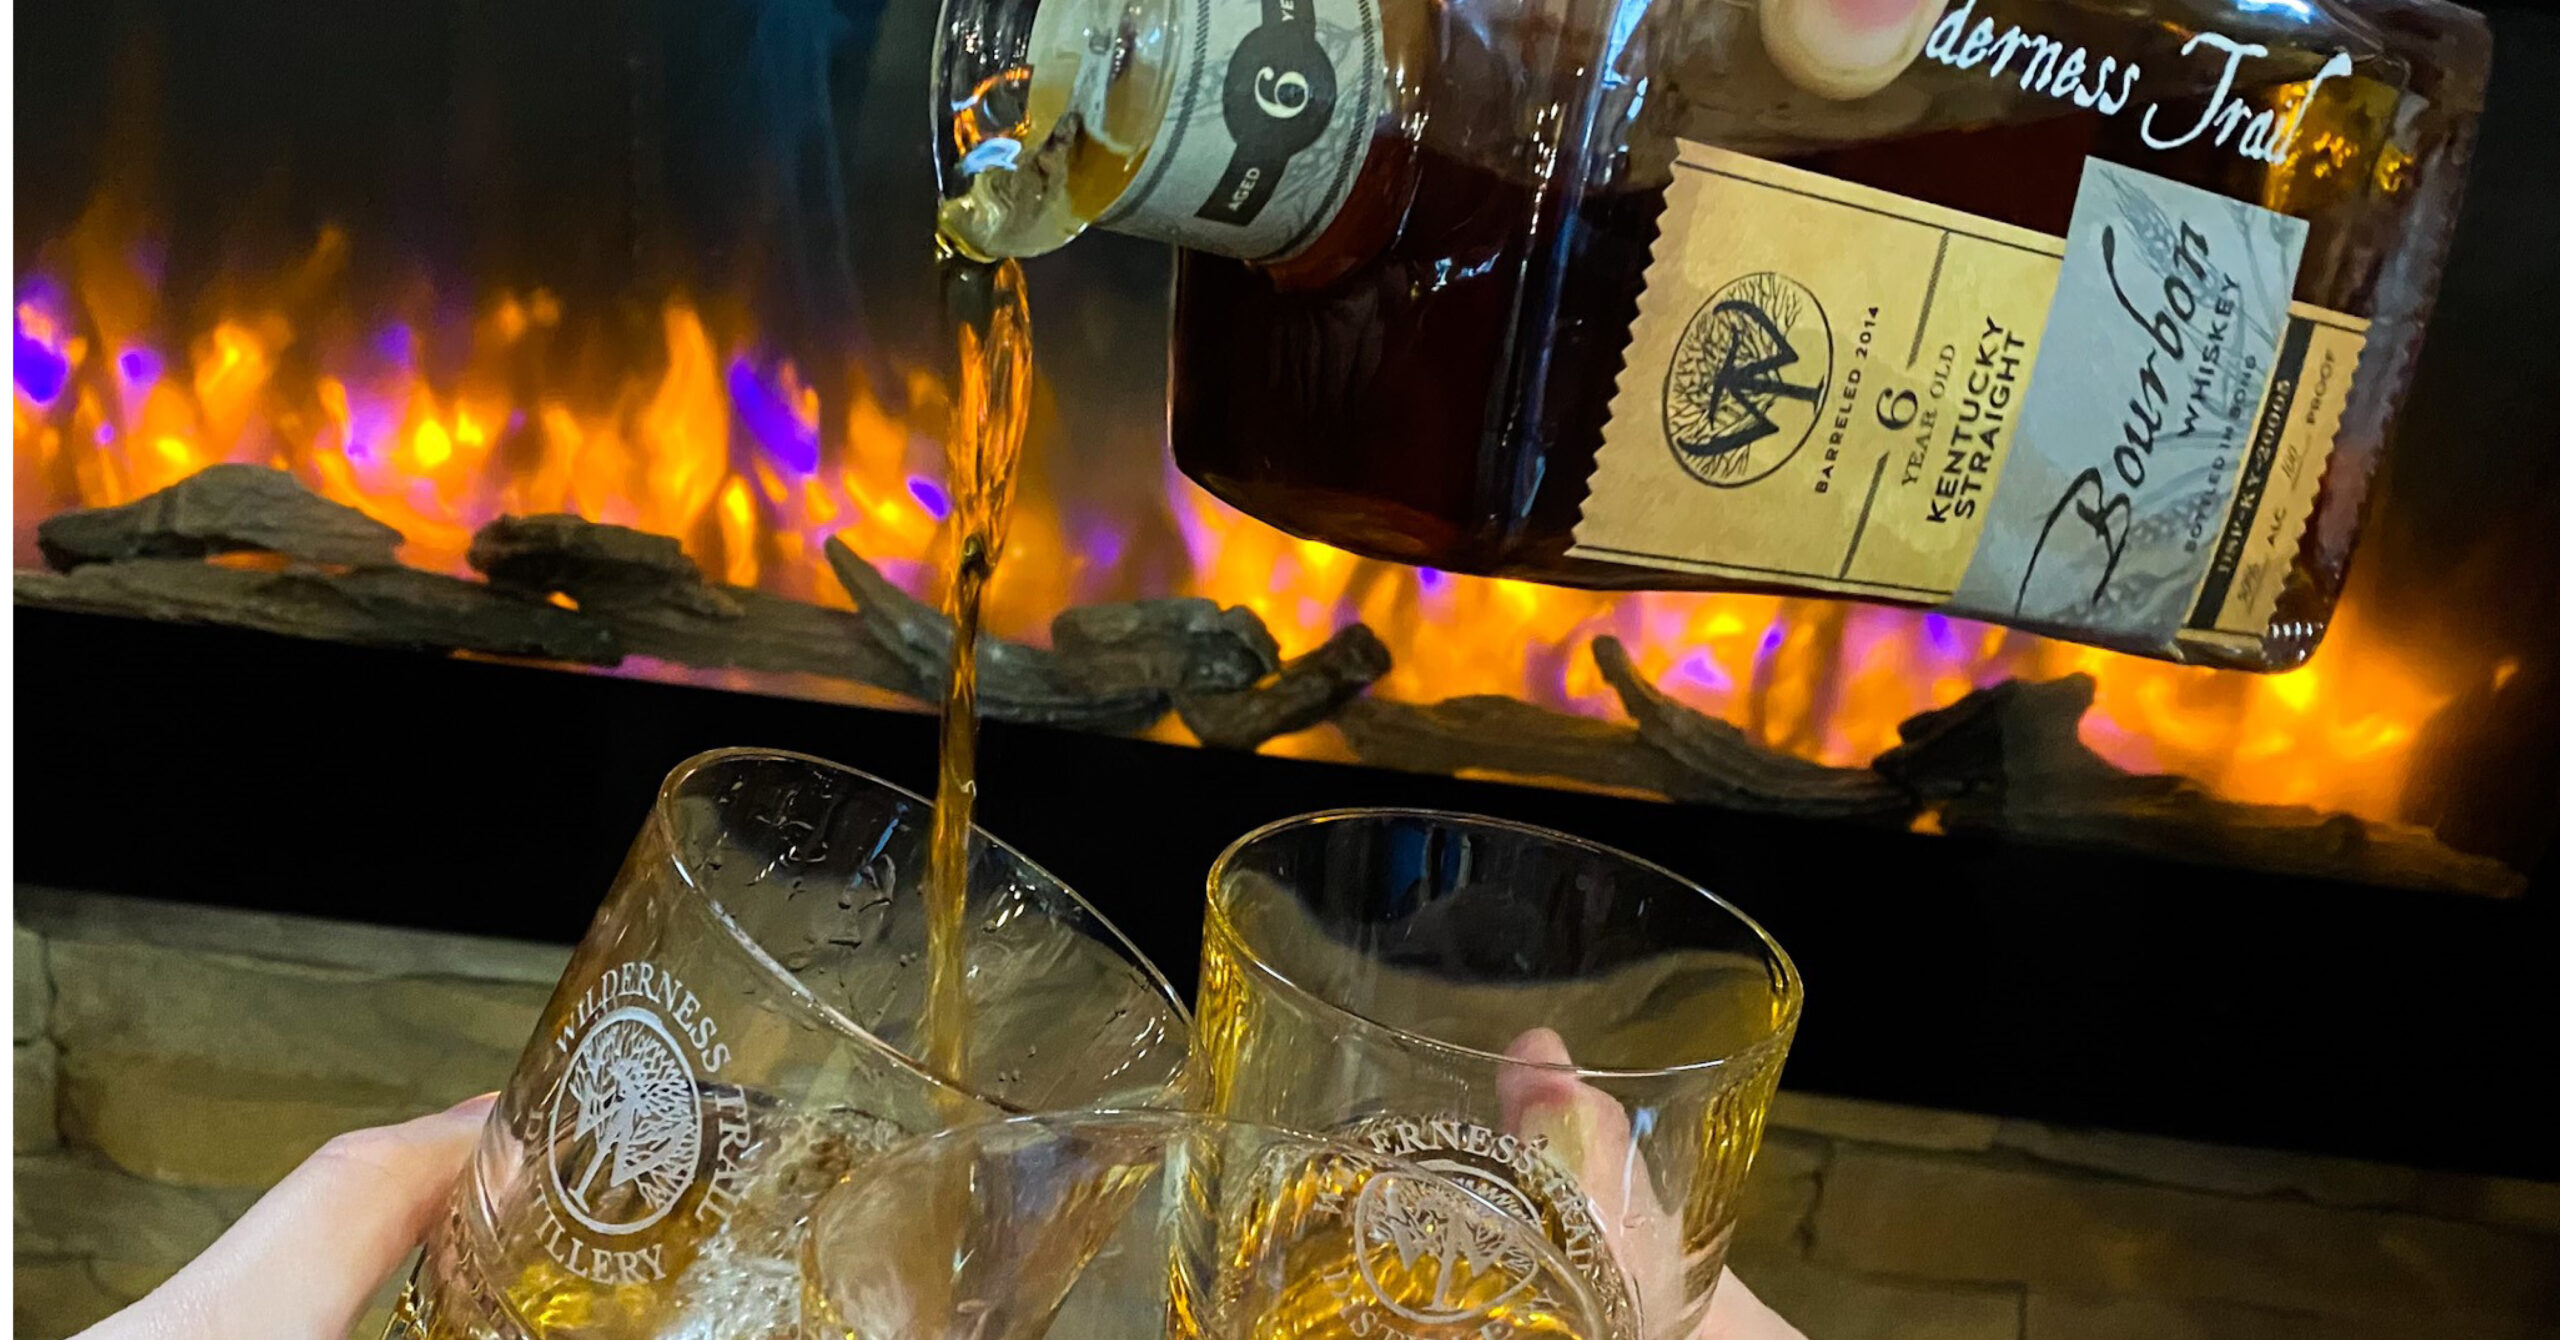 Wilderness Trail Bourbon is perfect for fireside chats.